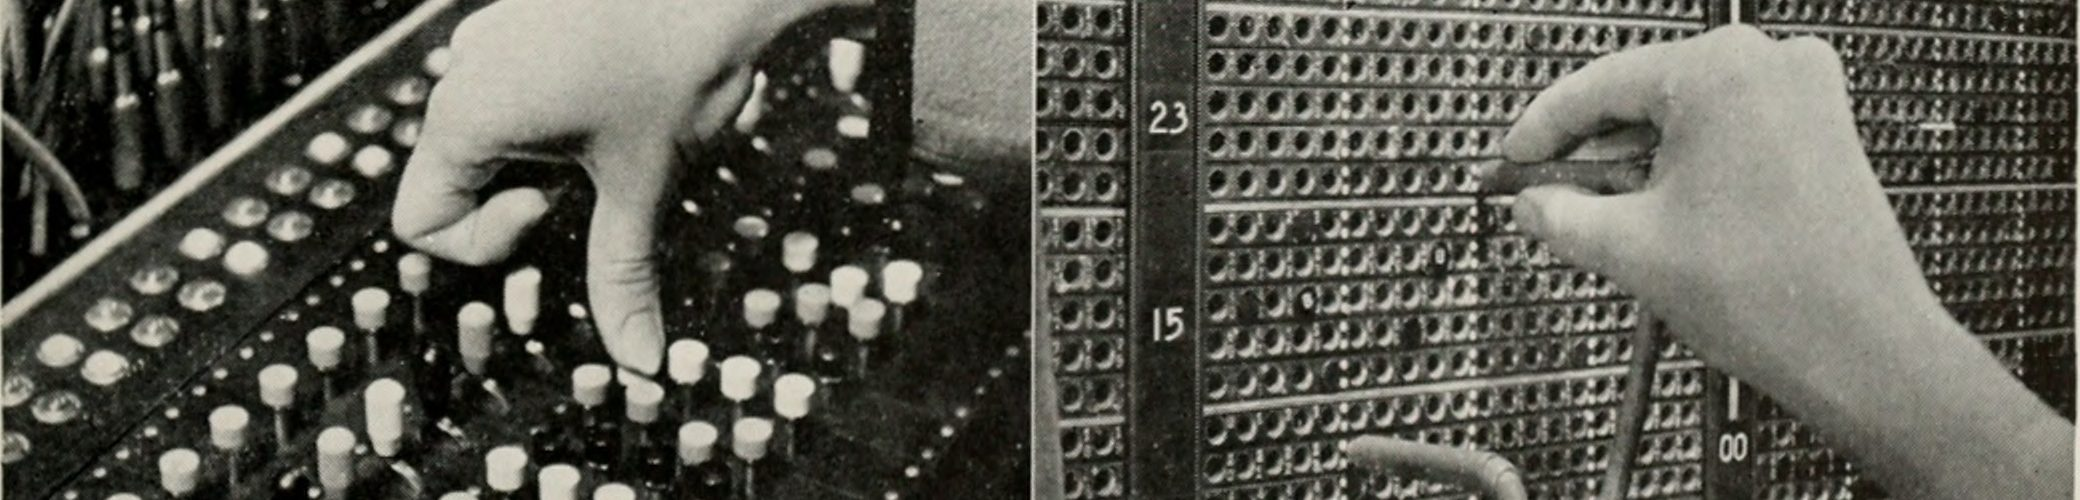 old telephone switchboard